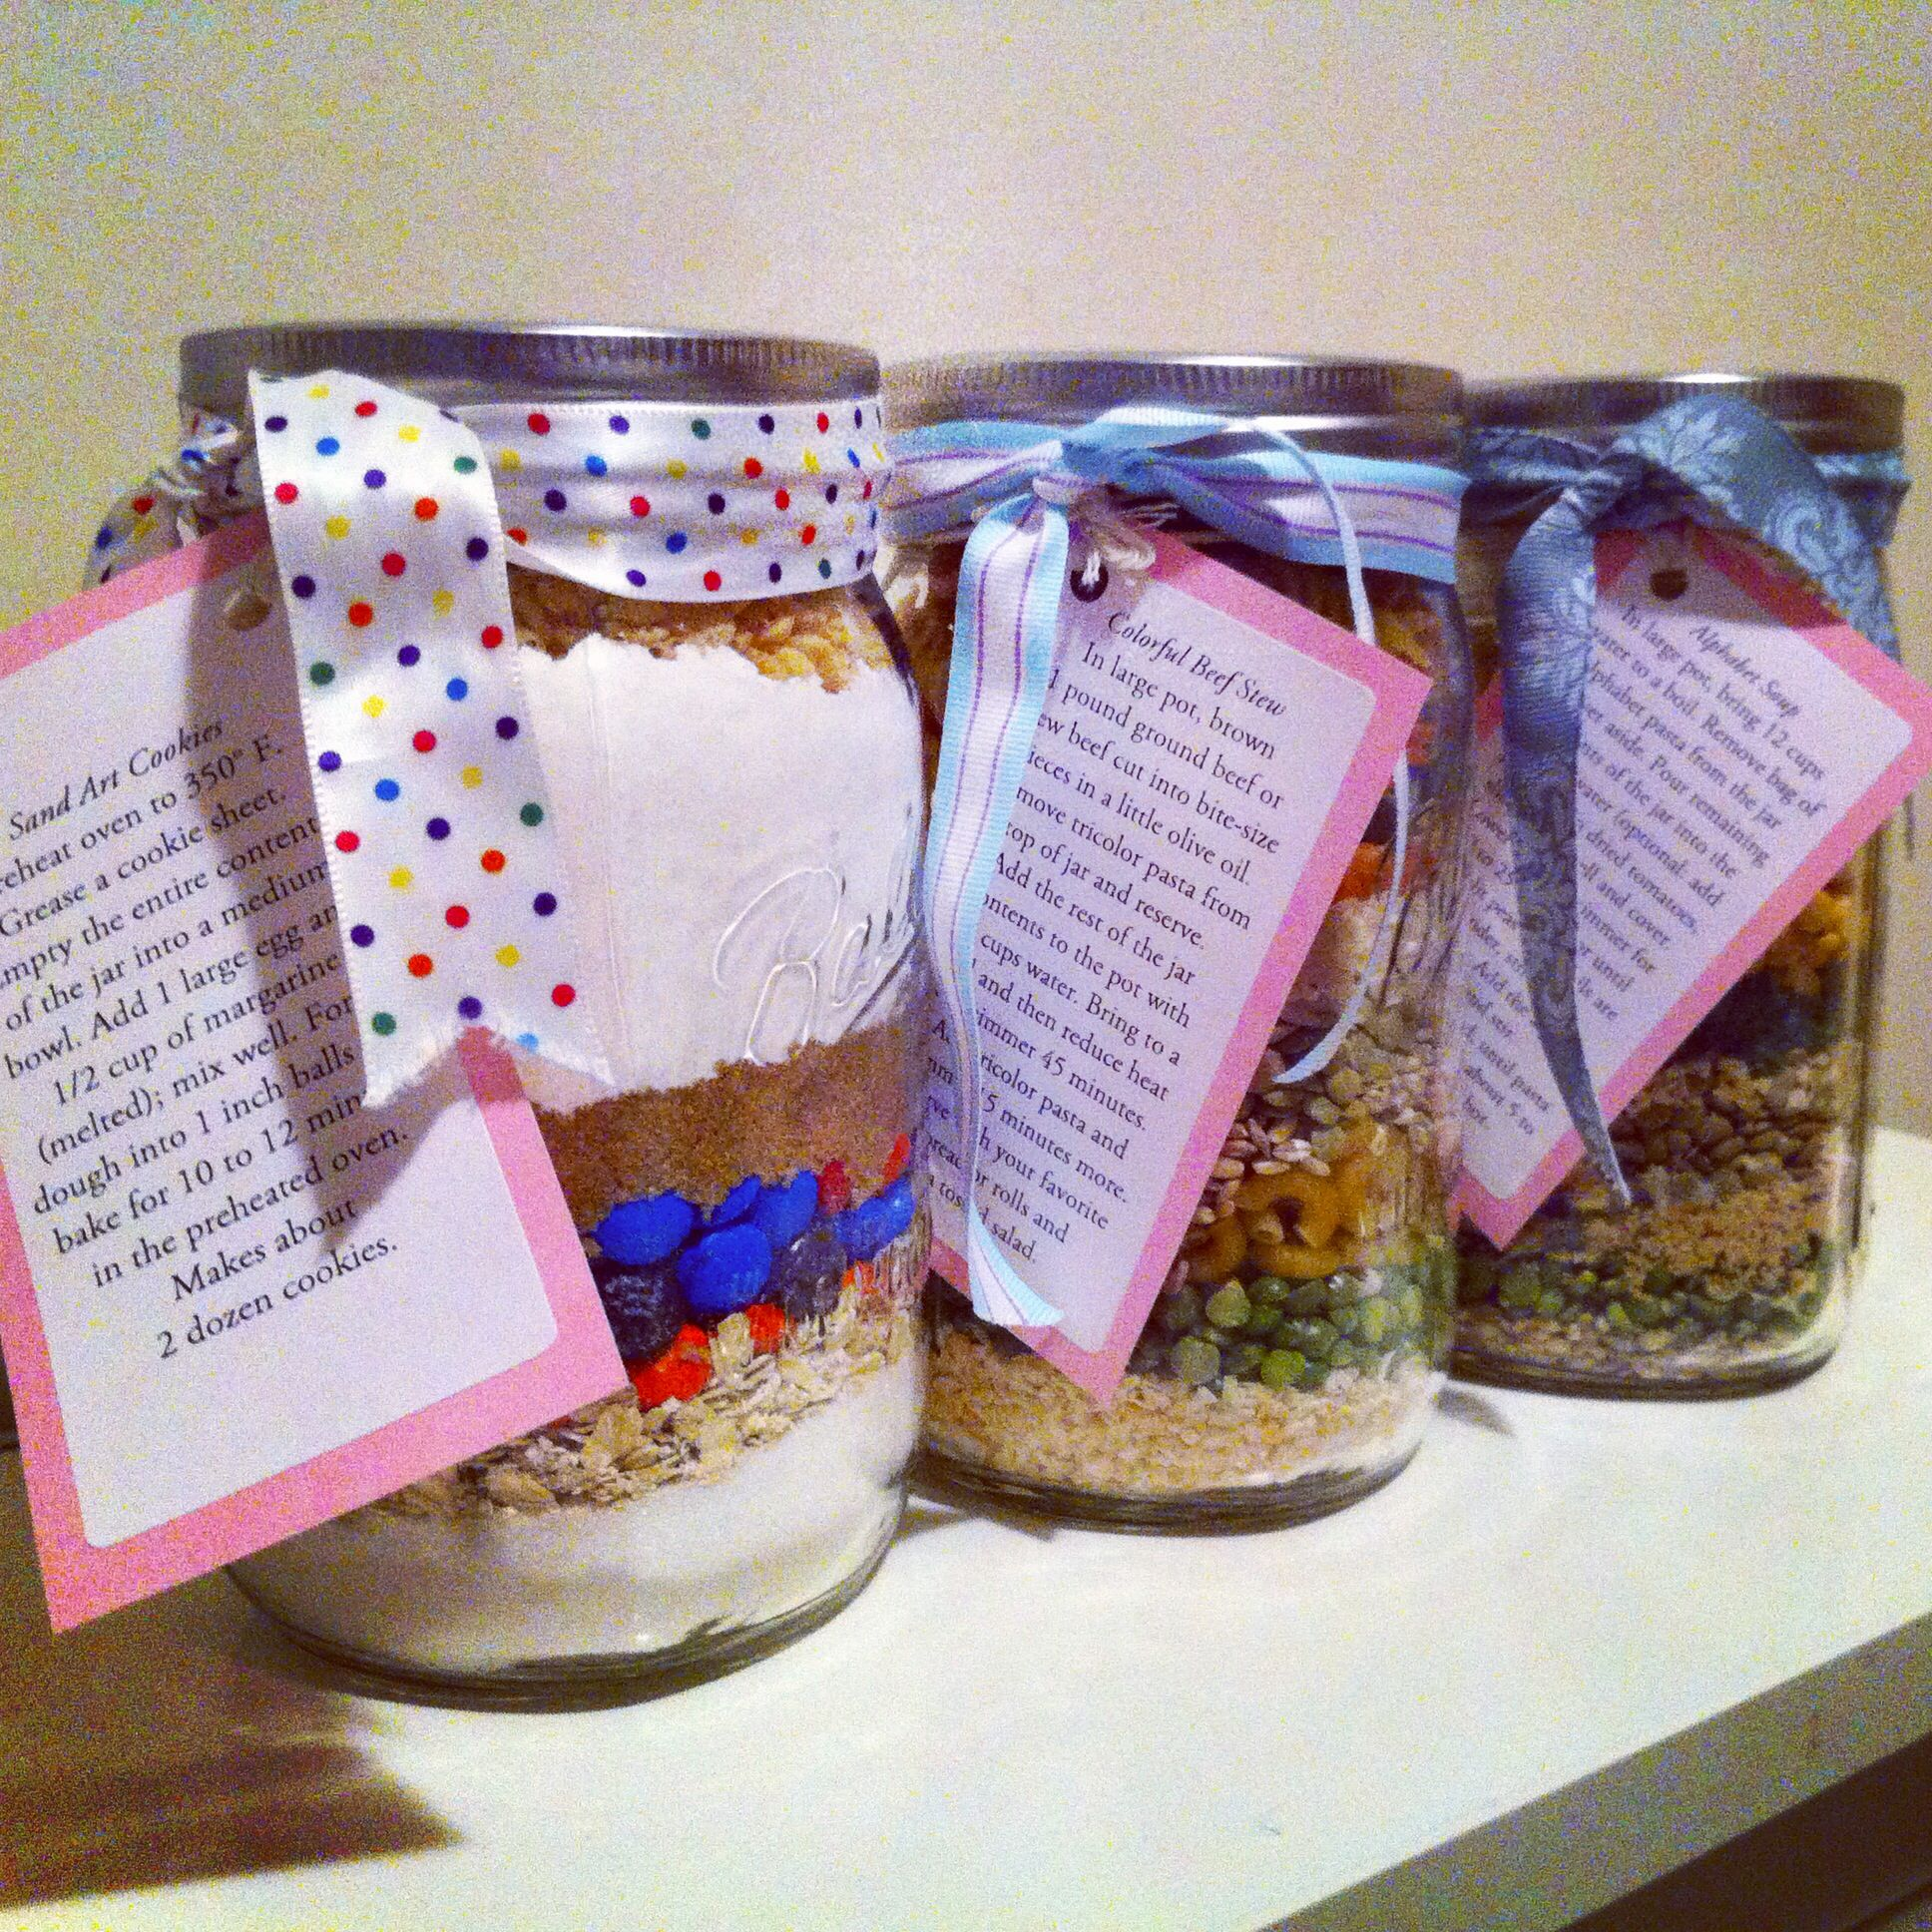 Recipesinajar for a wedding shower gift, my friend and